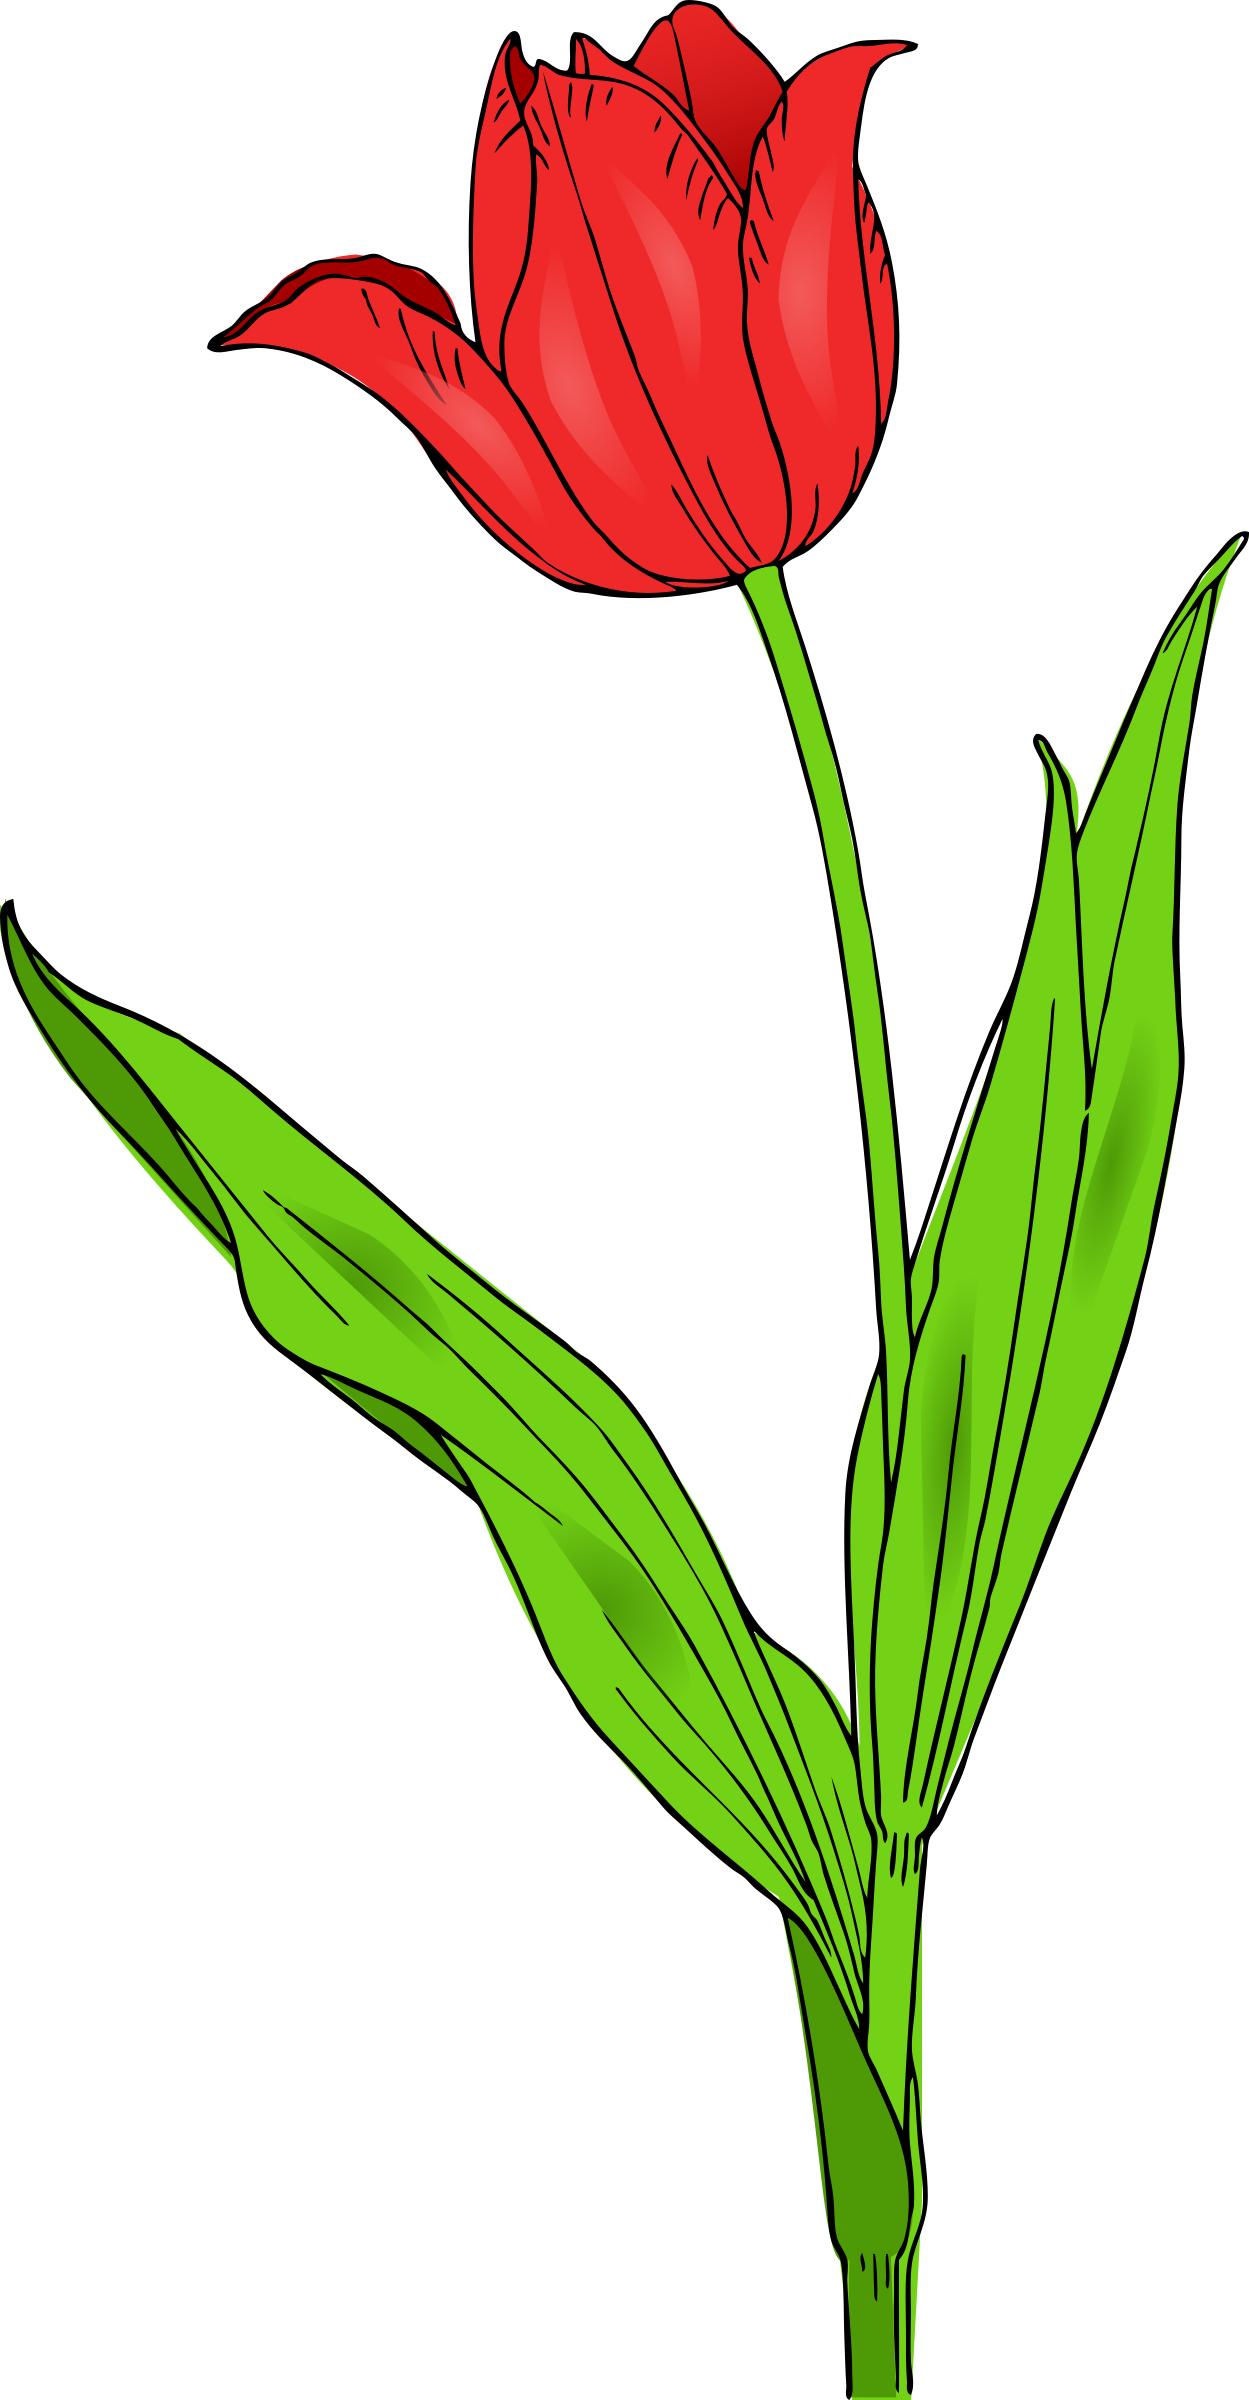 colored tulip by pitr, A colored red tulip., on